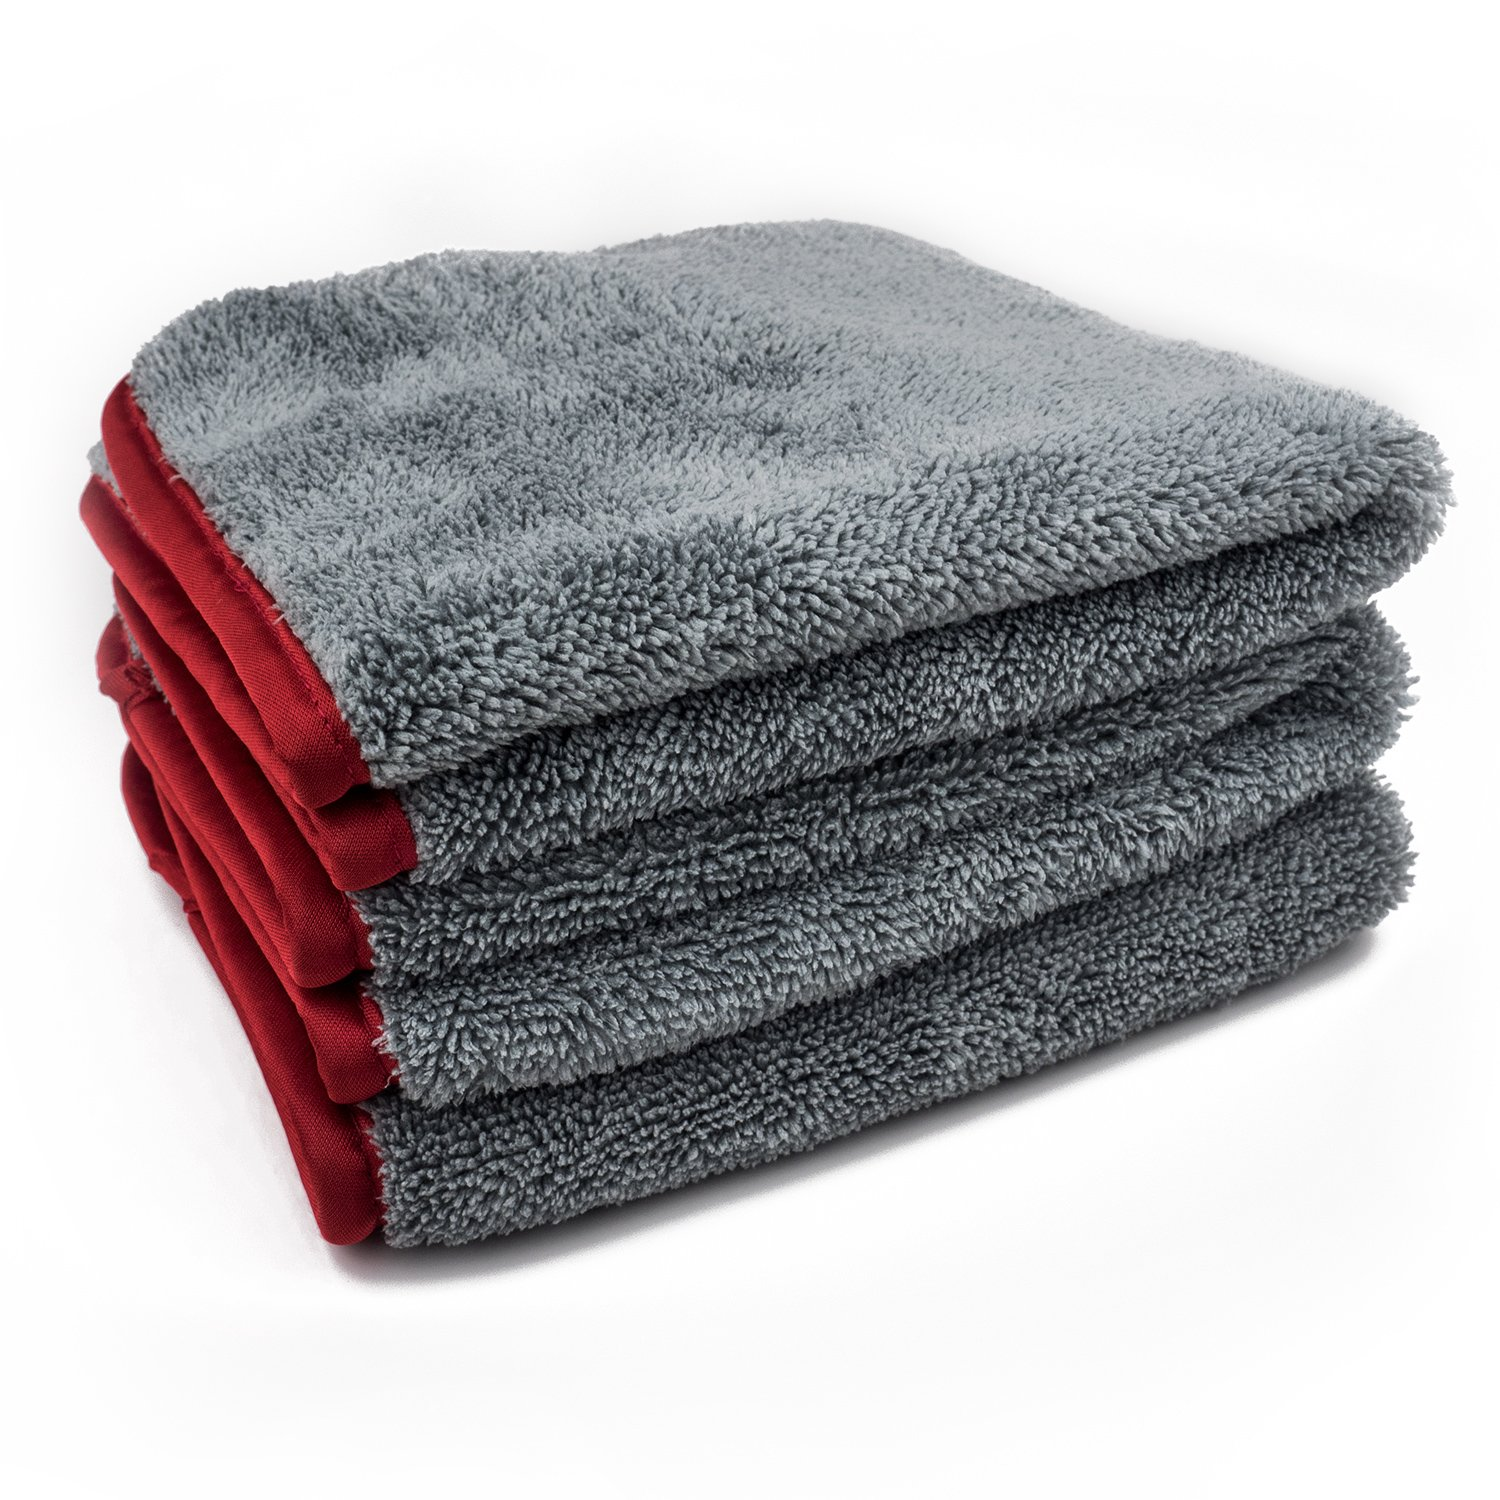 "Set of 3 - Ultra Plush 650GSM Chinchilla Microfiber Towel 16x16"" – Super Soft, Scratch Free Towels – Great for Waterless Wash, Quick Detail, Interior Dusting Detail Buddy DB-600GSM3PK"